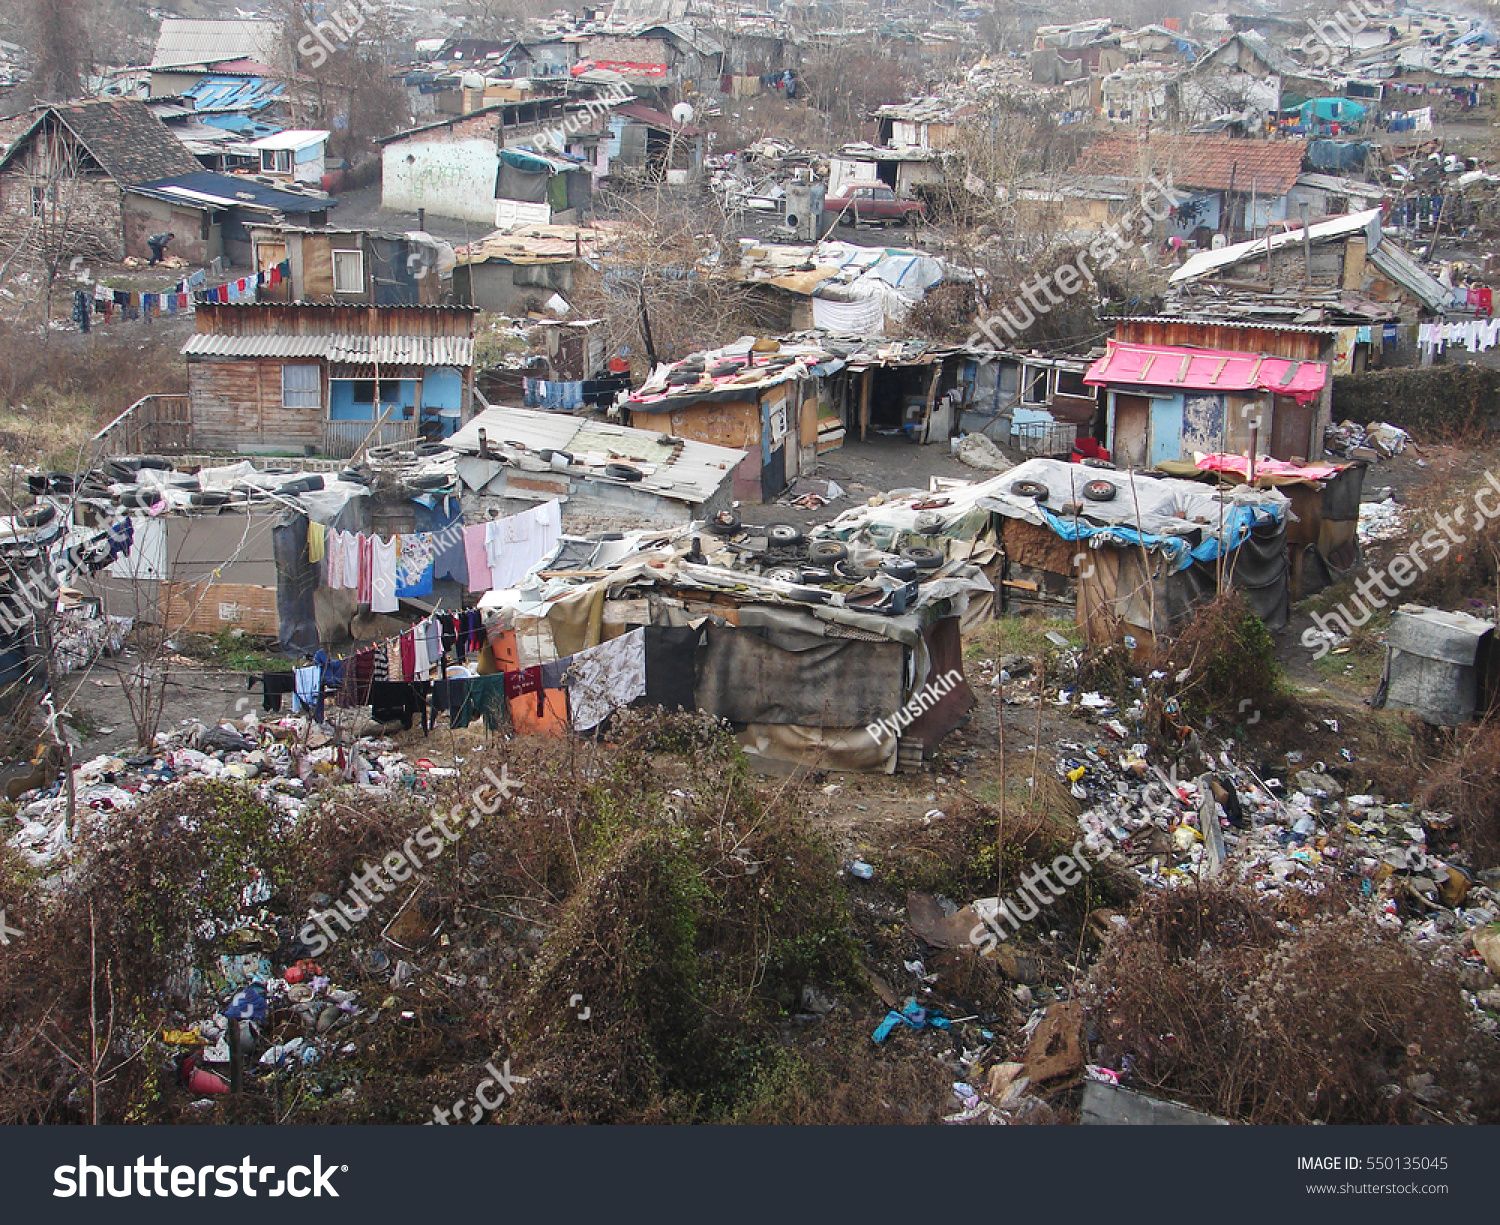 Gypsy slum in Belgrade, Serbia, town city urban settlement, poverty, garbage or junkyard, houses and shacks made of wood or metal  #550135045